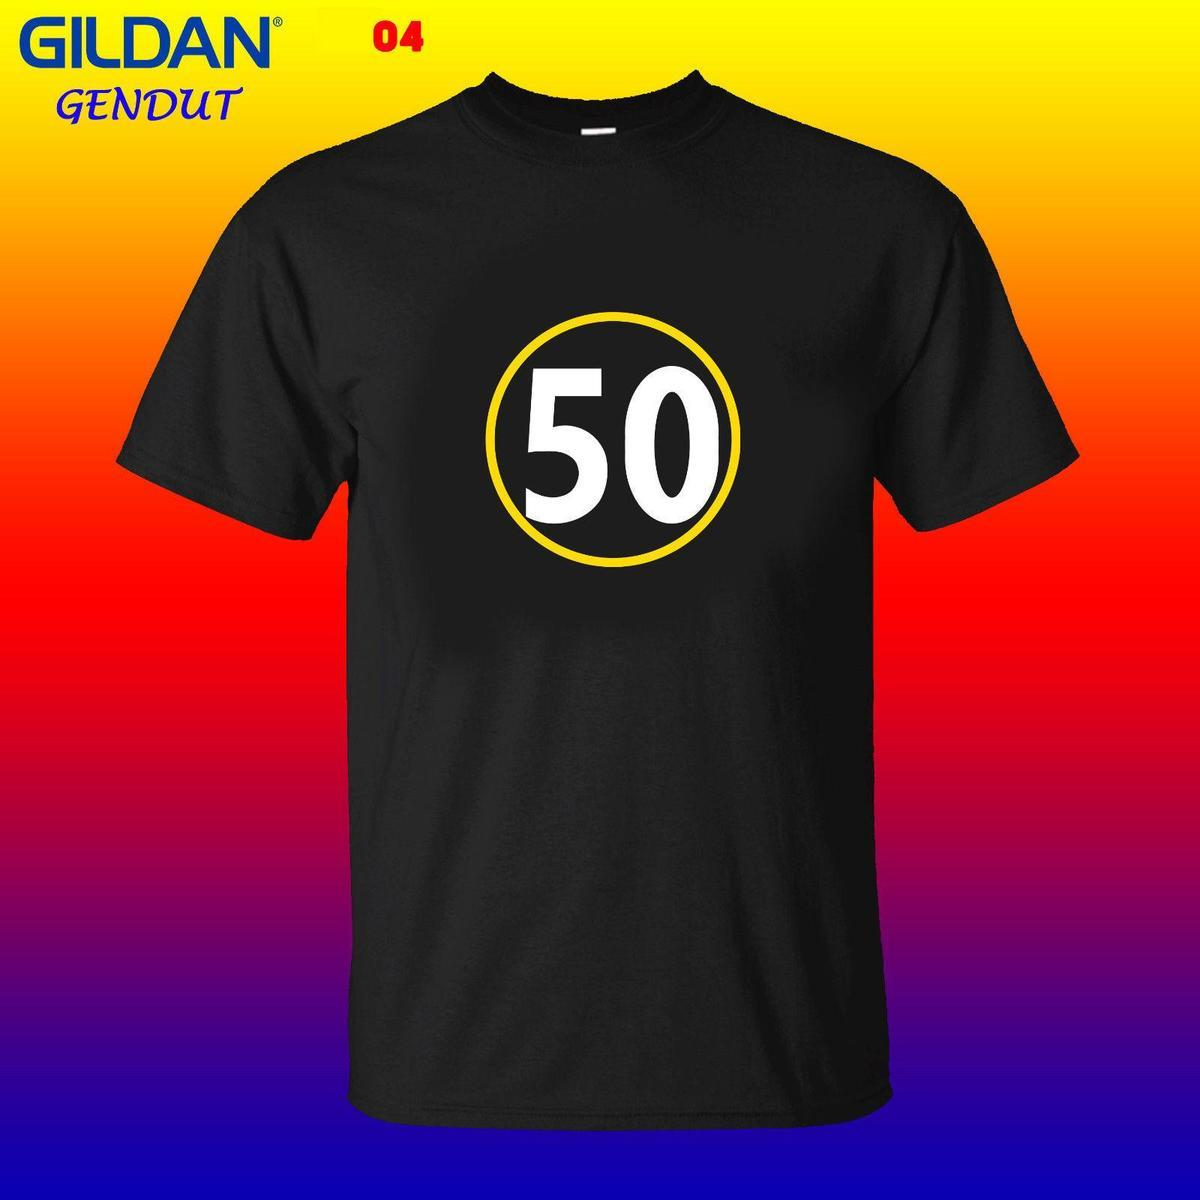 50 Mens Tee T Shirt Pittsburgh Steelers Tee Shirt 50 Ryan Shazier New  Awesome T Shirts For Guys Cool Tee Shirt Designs From Amesion30 c0a0f1f5f